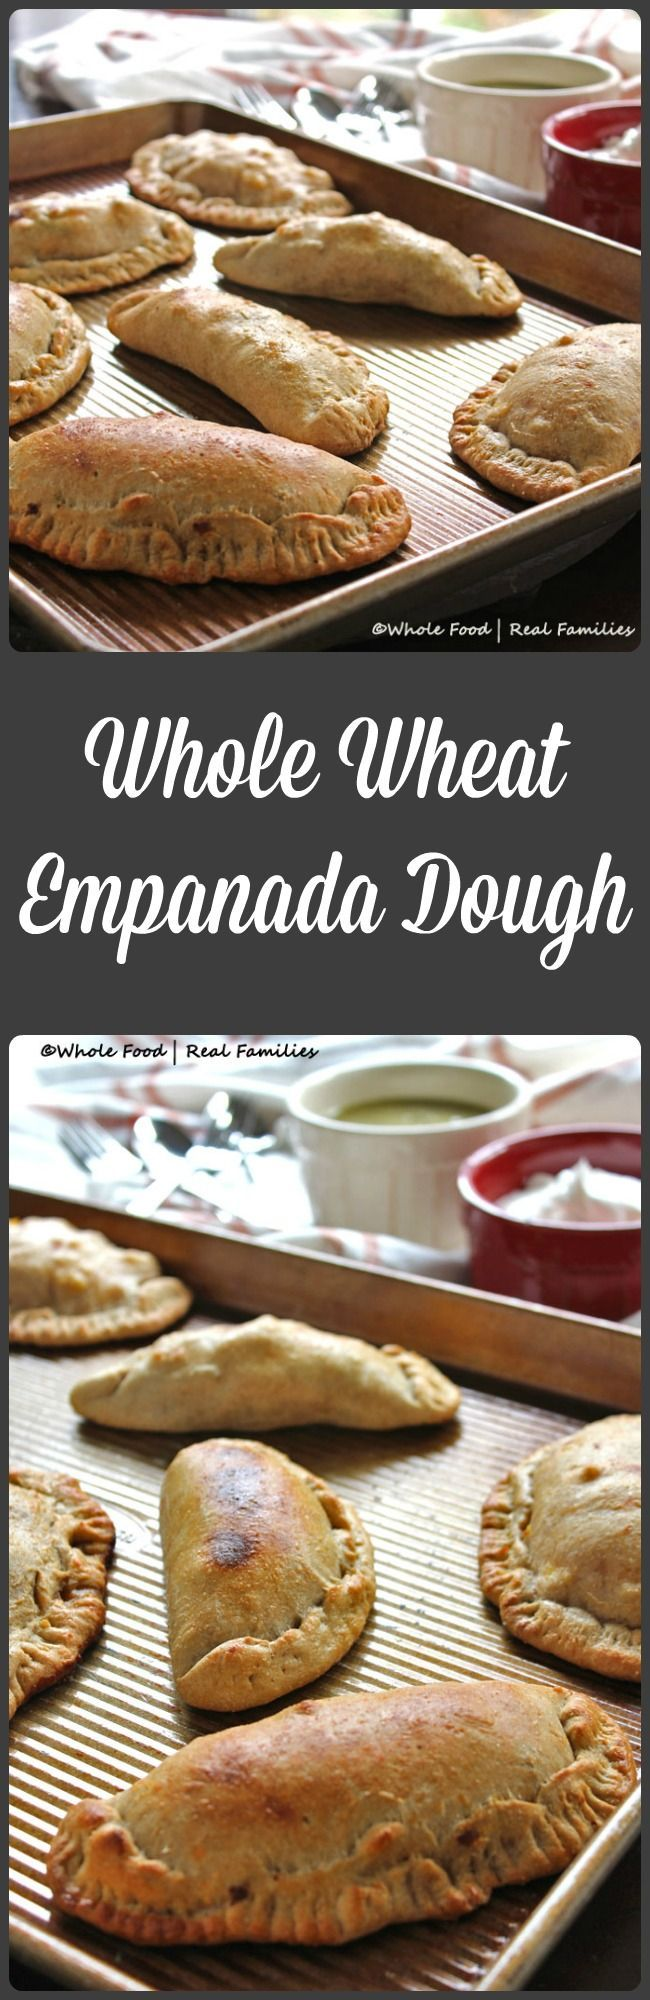 Whole Wheat Empanada Dough - Whole Food | Real Families. Stuff this dough with beef, chicken, pork, veggies - even scrambled eggs. Super easy because it is made in the food processor. Make a batch for the freezer, then just thaw, stuff, seal and bake for a hearty dinner. This dough is made for baking, not frying. So it is a healthy option! Get the recipe at www.wholefoodrealfamilies.com.